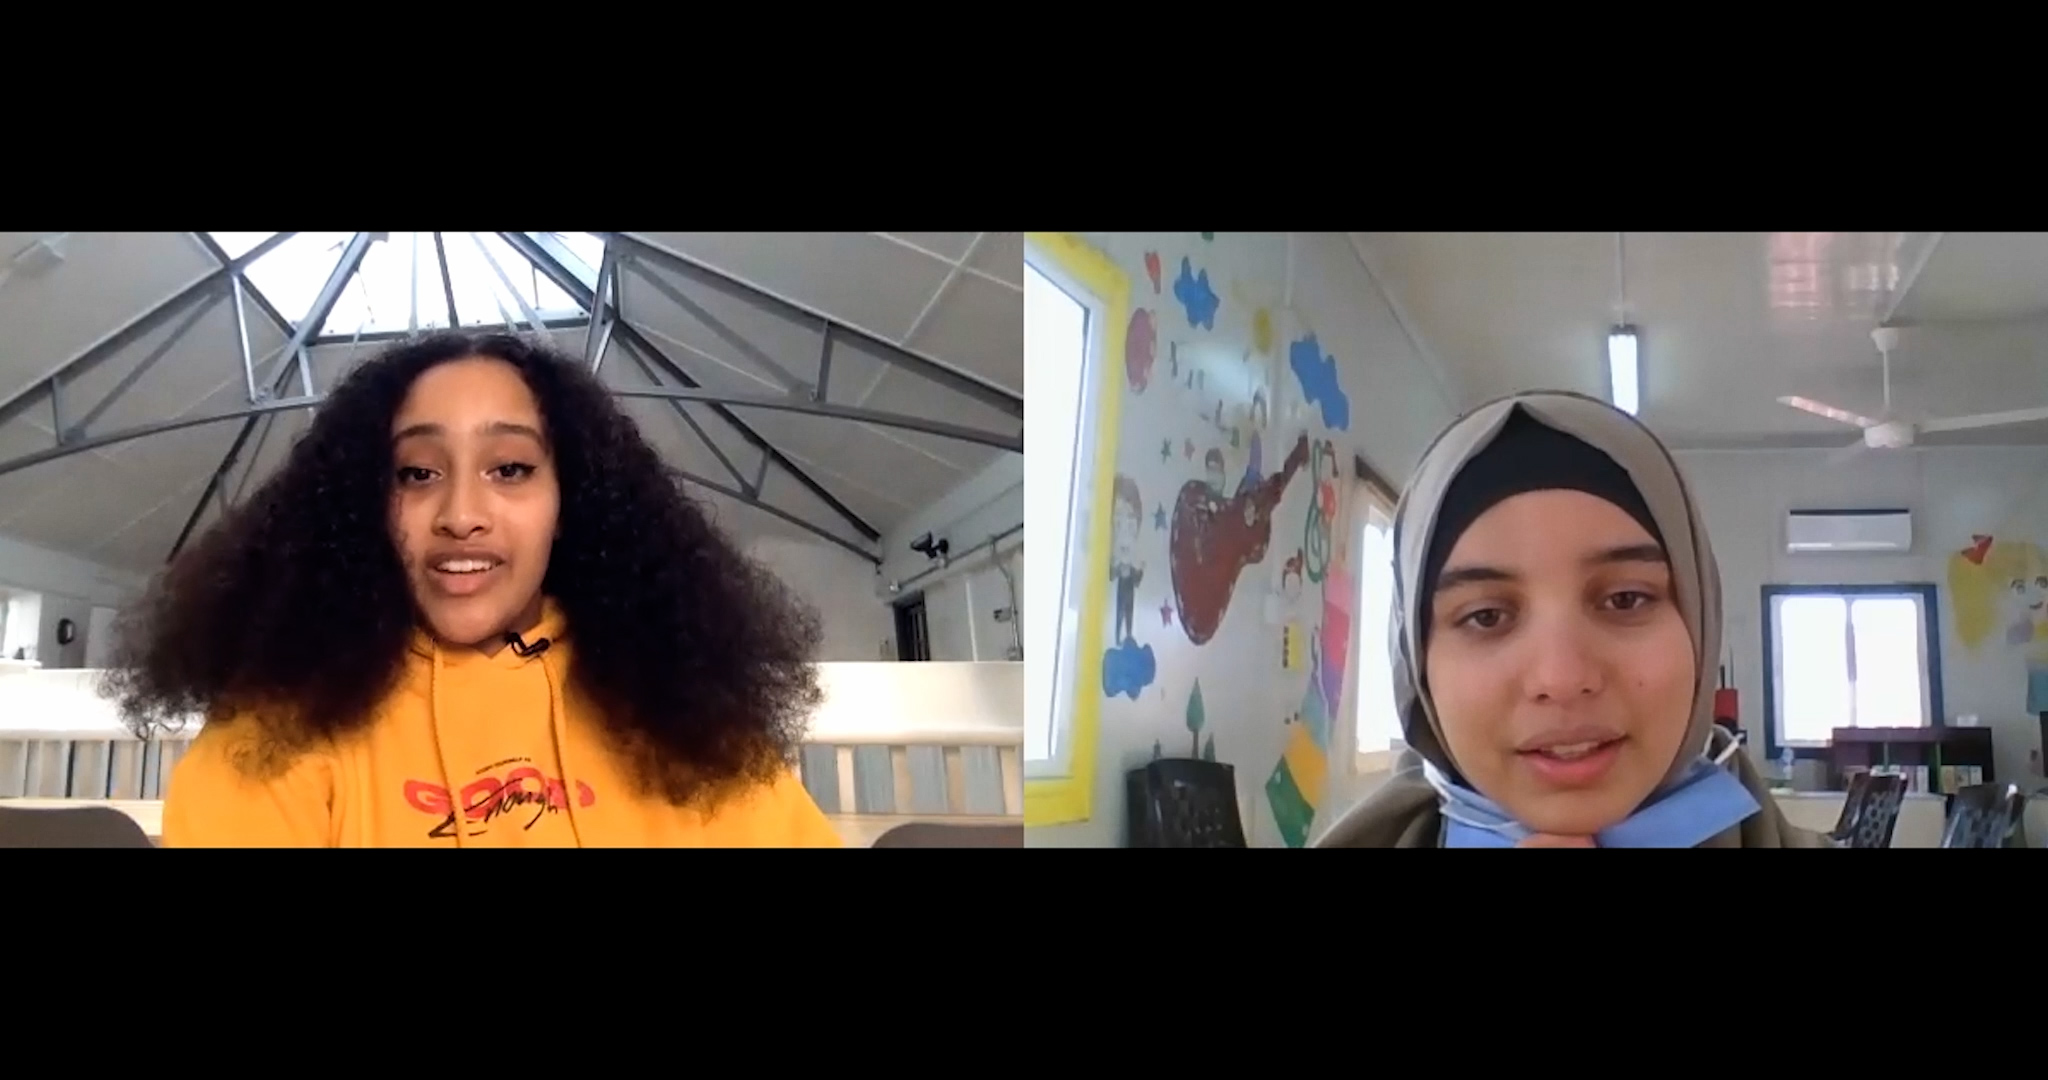 Hillsong UK youth & teenage Syrian refugee discuss their past and hopes for the future